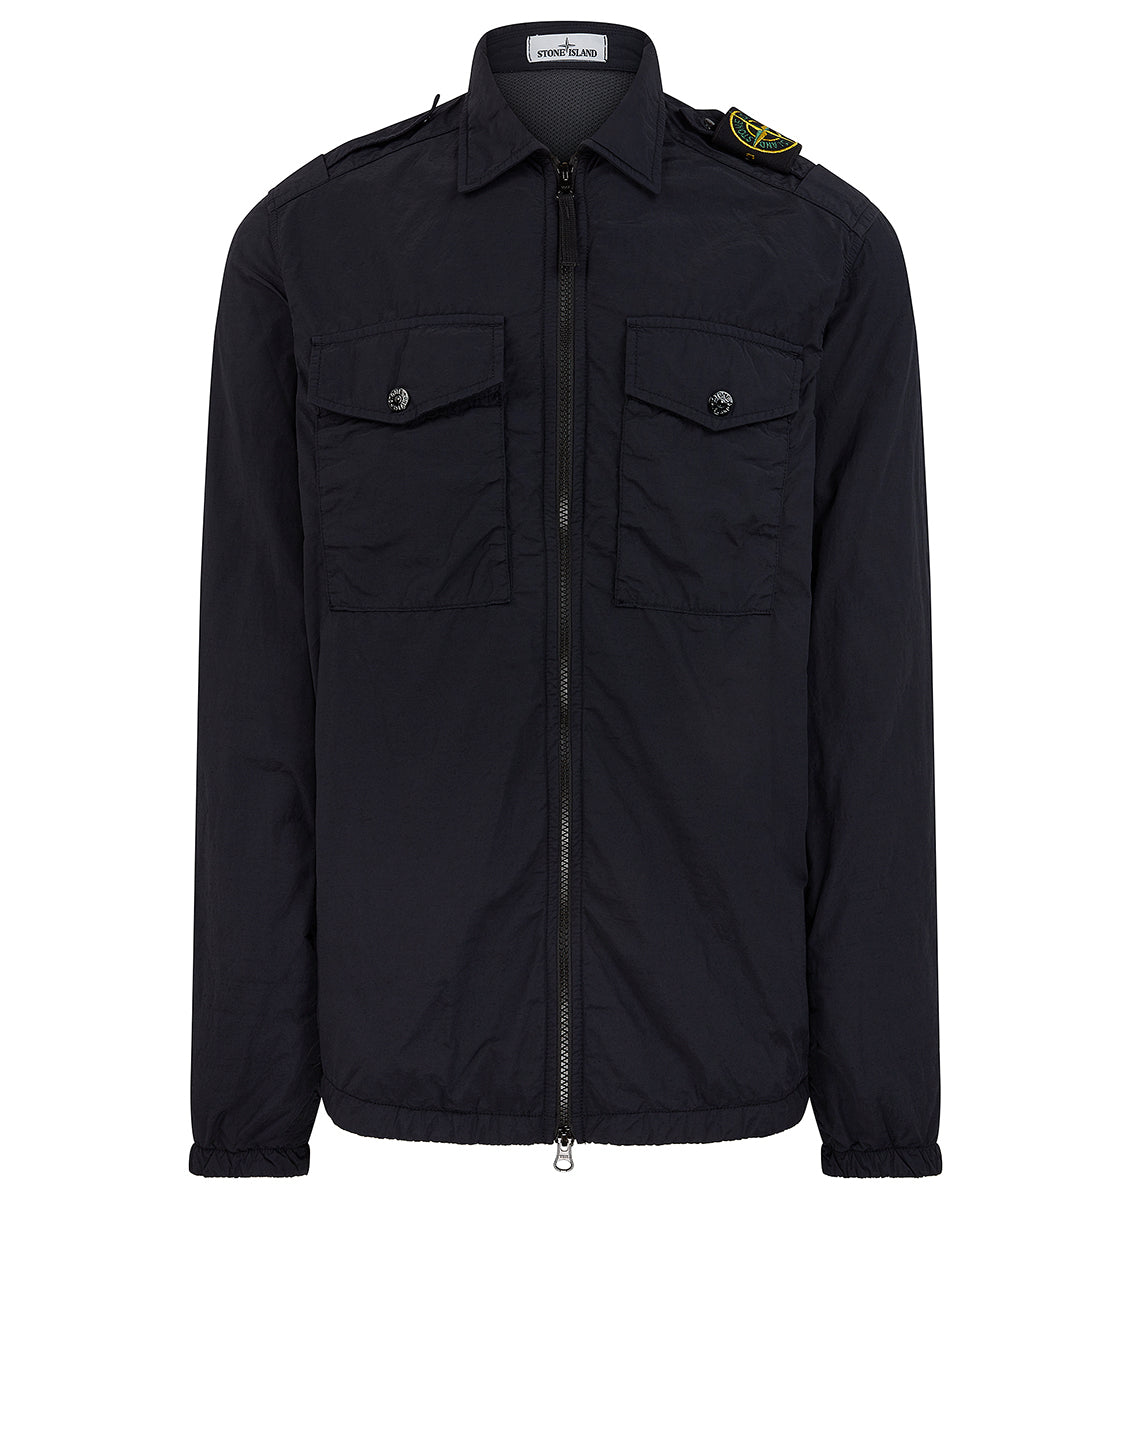 11303 NASLAN LIGHT: Overshirt in Navy